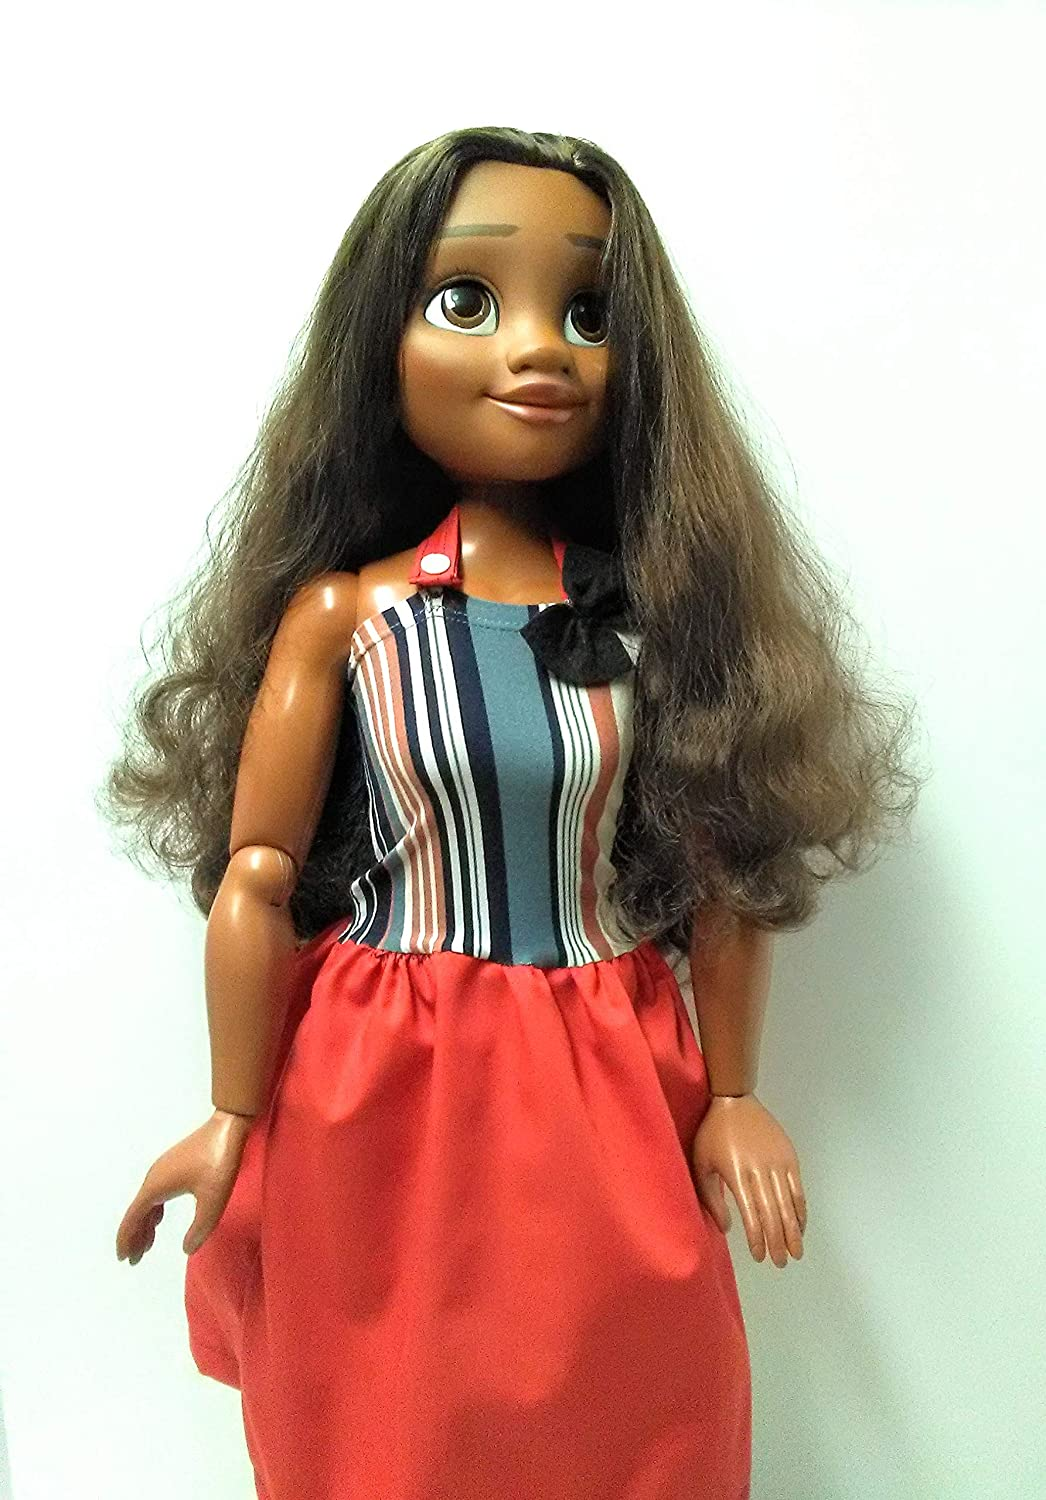 Handmade dress for 32 inch dolls Fashionable sundress for 32 inch Moana doll or similar dolls 32 inch doll clothes Doll sundress